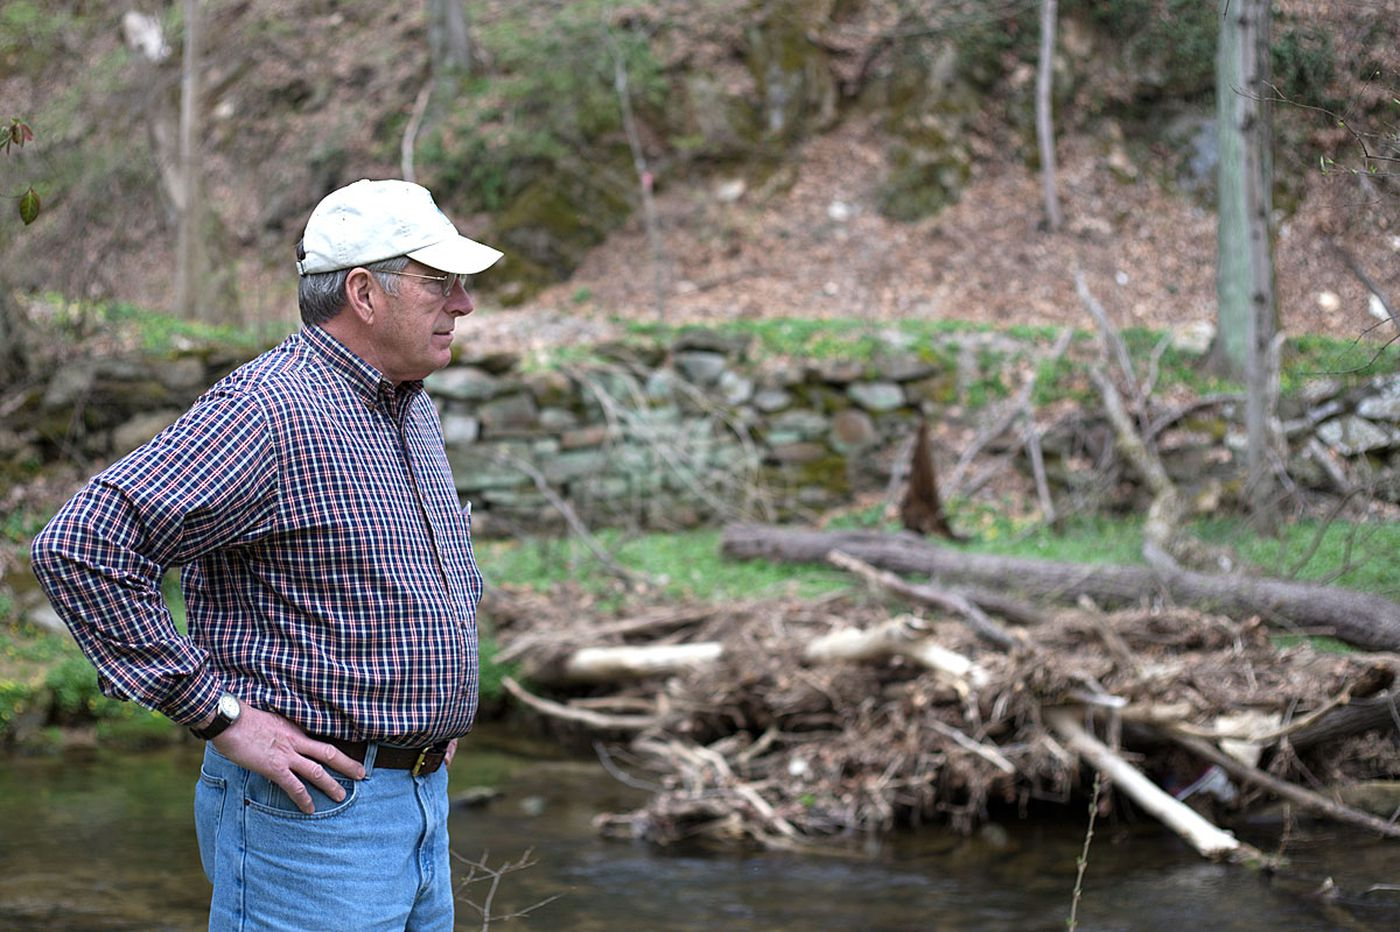 Trout lovers say turnpike expansion threatens blue-ribbon Valley Forge stream